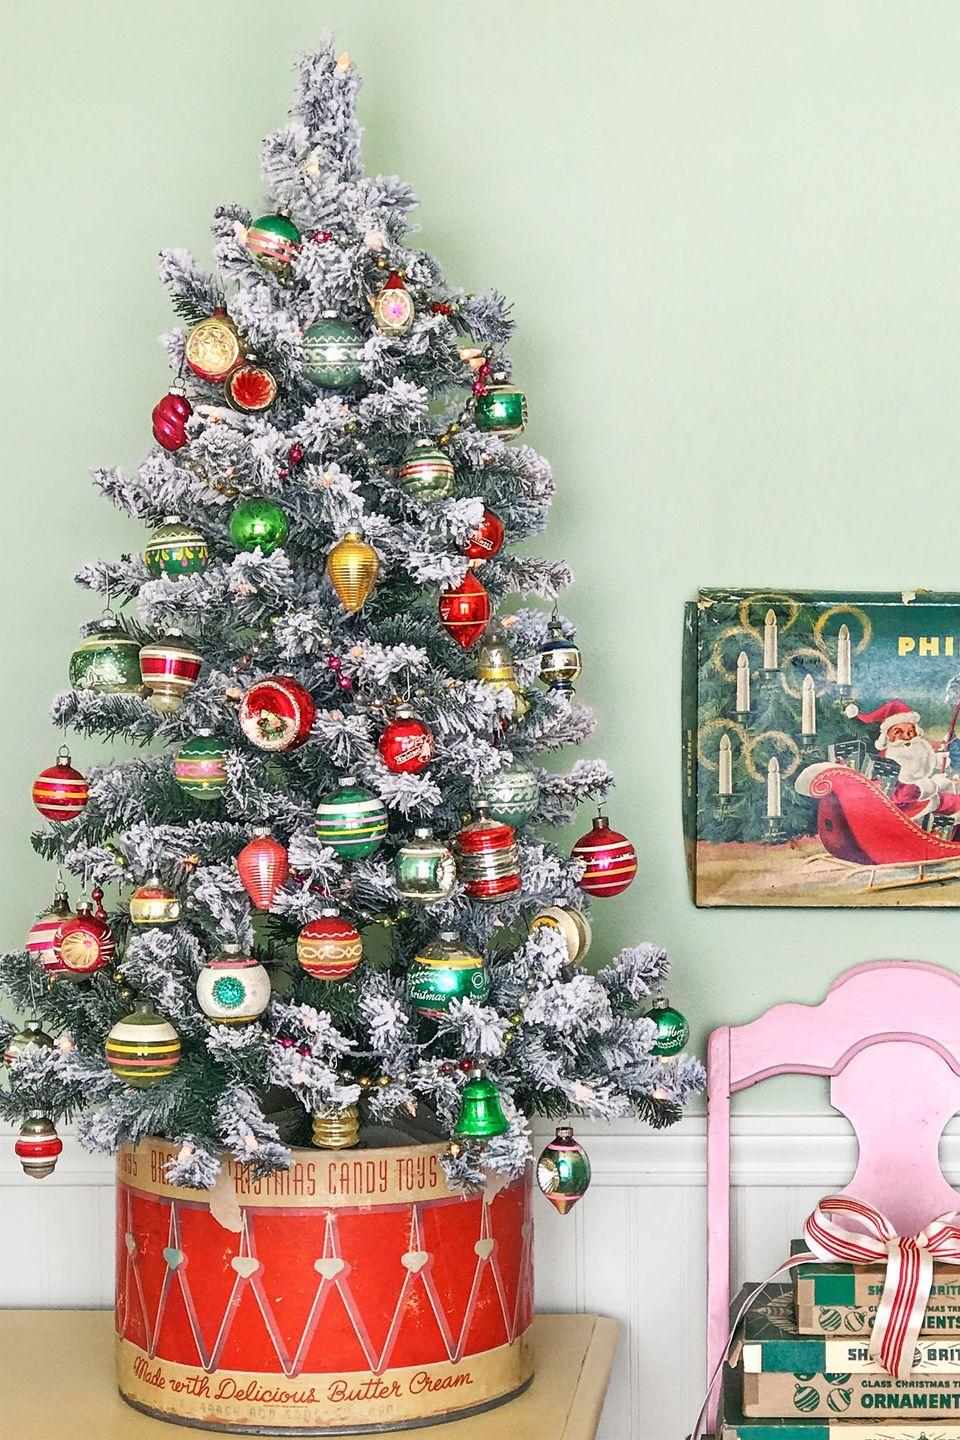 """<p>Cover the unsightly base of an artificial Christmas tree by placing it in an antique candy box or toy chest. </p><p><strong>RELATED: </strong><a href=""""https://www.countryliving.com/home-design/decorating-ideas/tips/g1251/trim-christmas-trees-1208/"""" rel=""""nofollow noopener"""" target=""""_blank"""" data-ylk=""""slk:Beautiful Ideas to Trim Your Tree This Holiday Season"""" class=""""link rapid-noclick-resp"""">Beautiful Ideas to Trim Your Tree This Holiday Season</a></p>"""